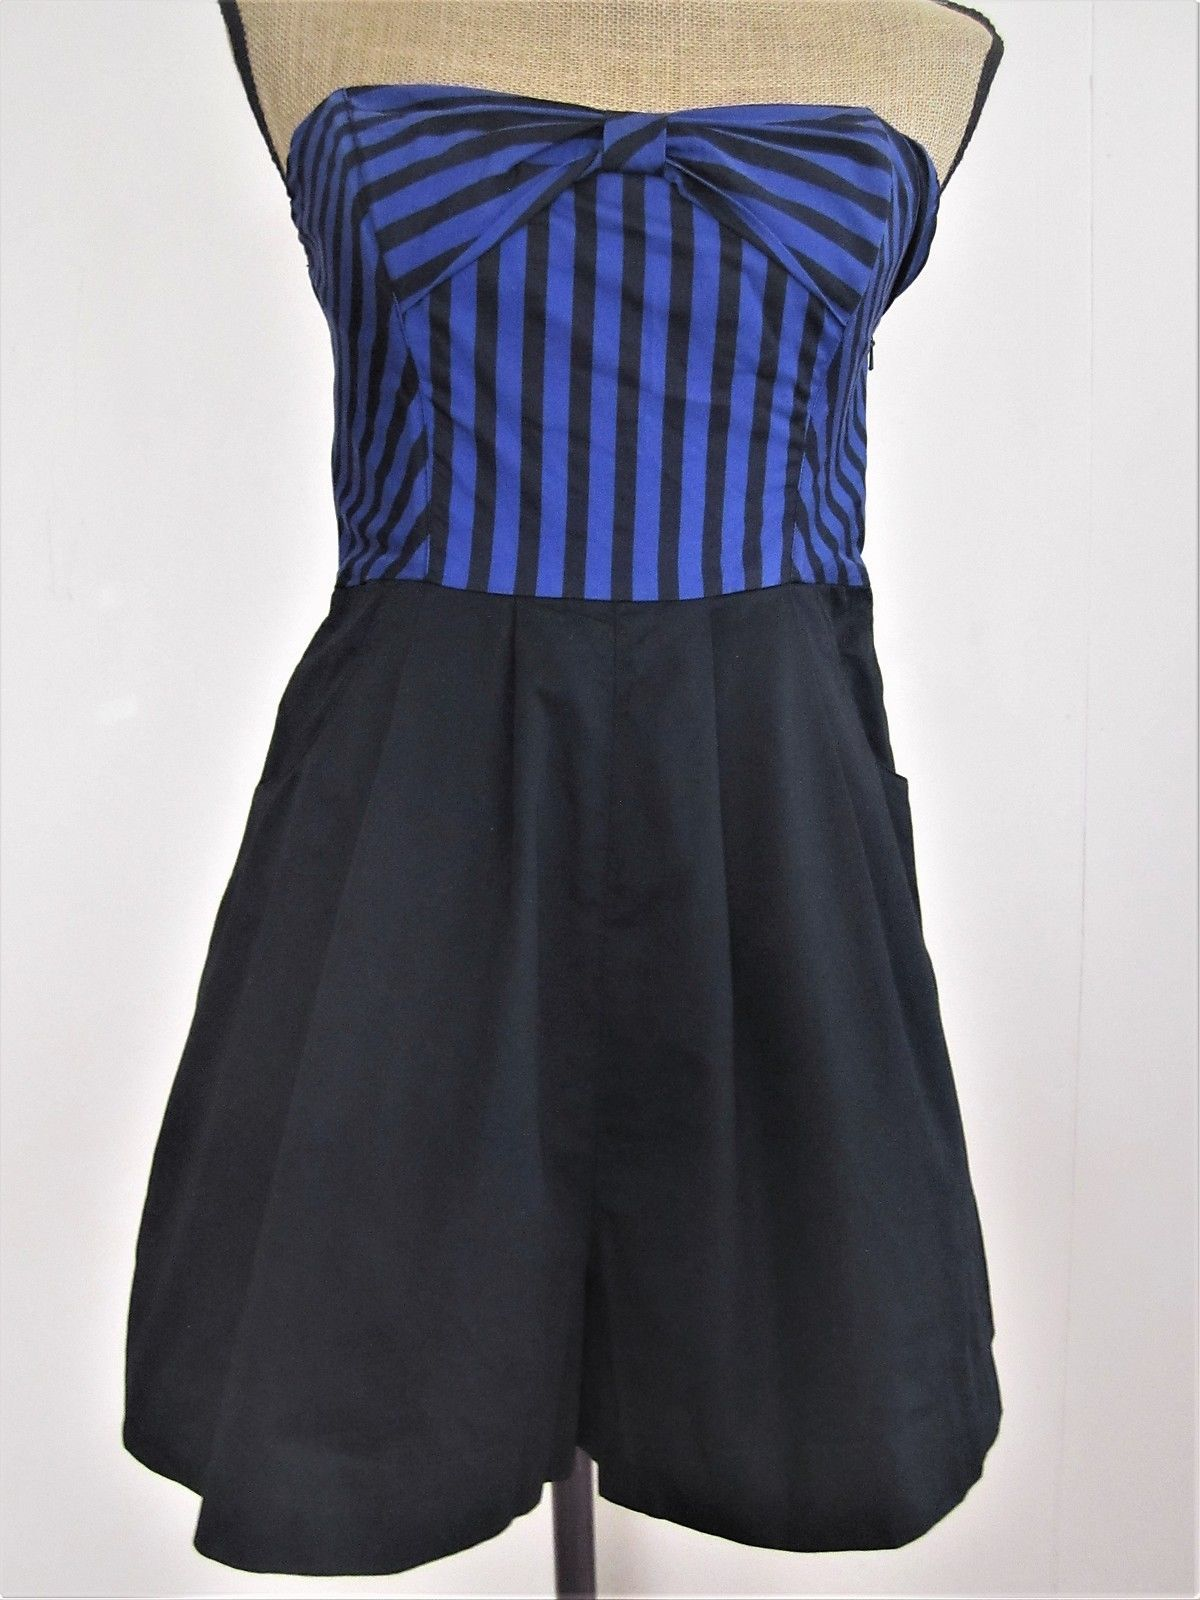 1be12e47a2c1 Maeve Anthropologie Romper black blue and 50 similar items